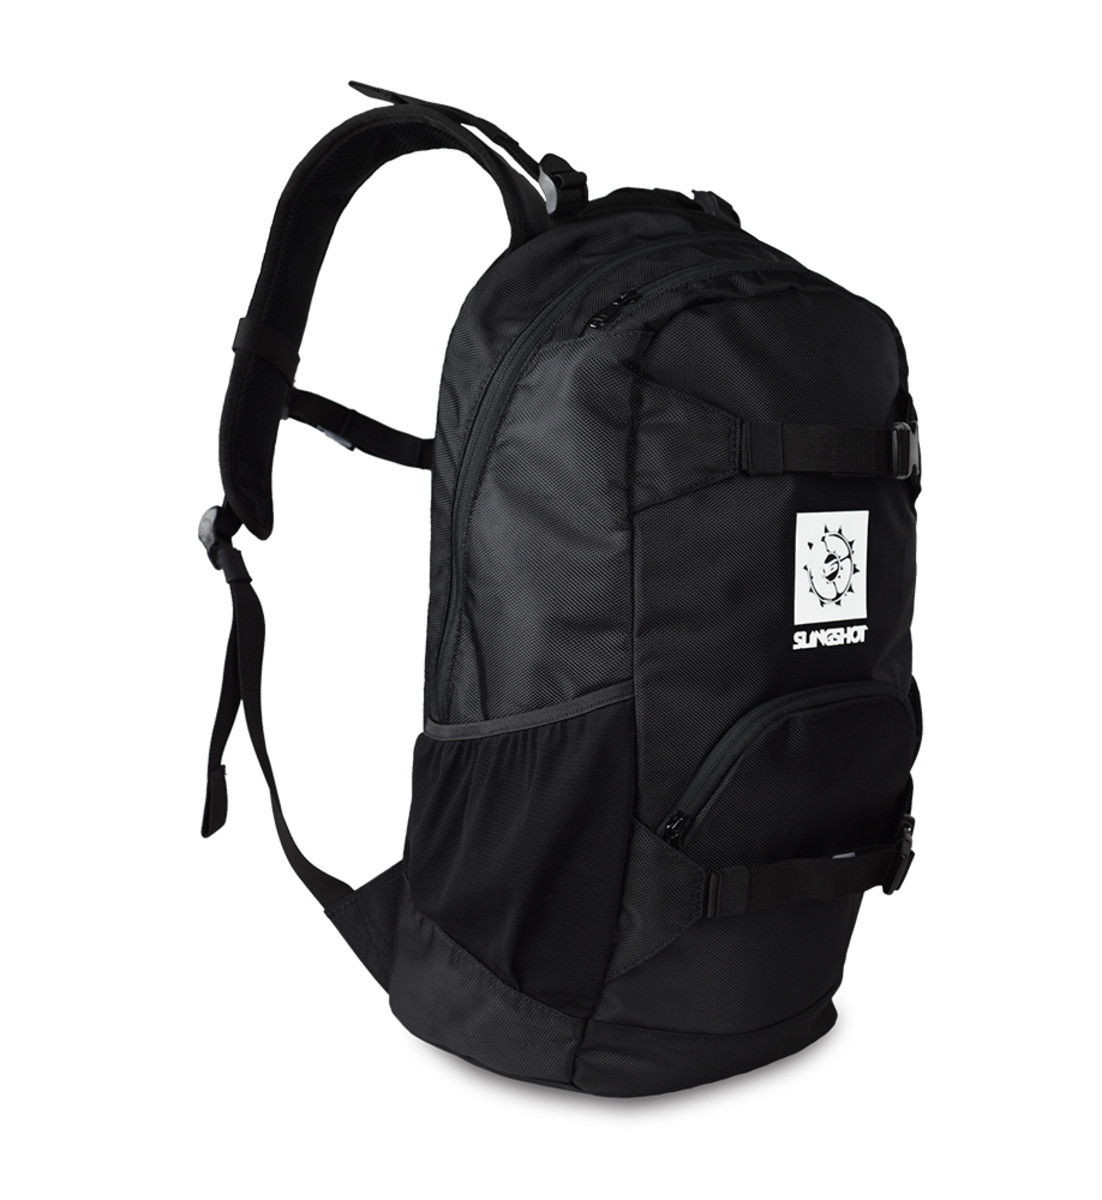 PER DIEM BACKPACK